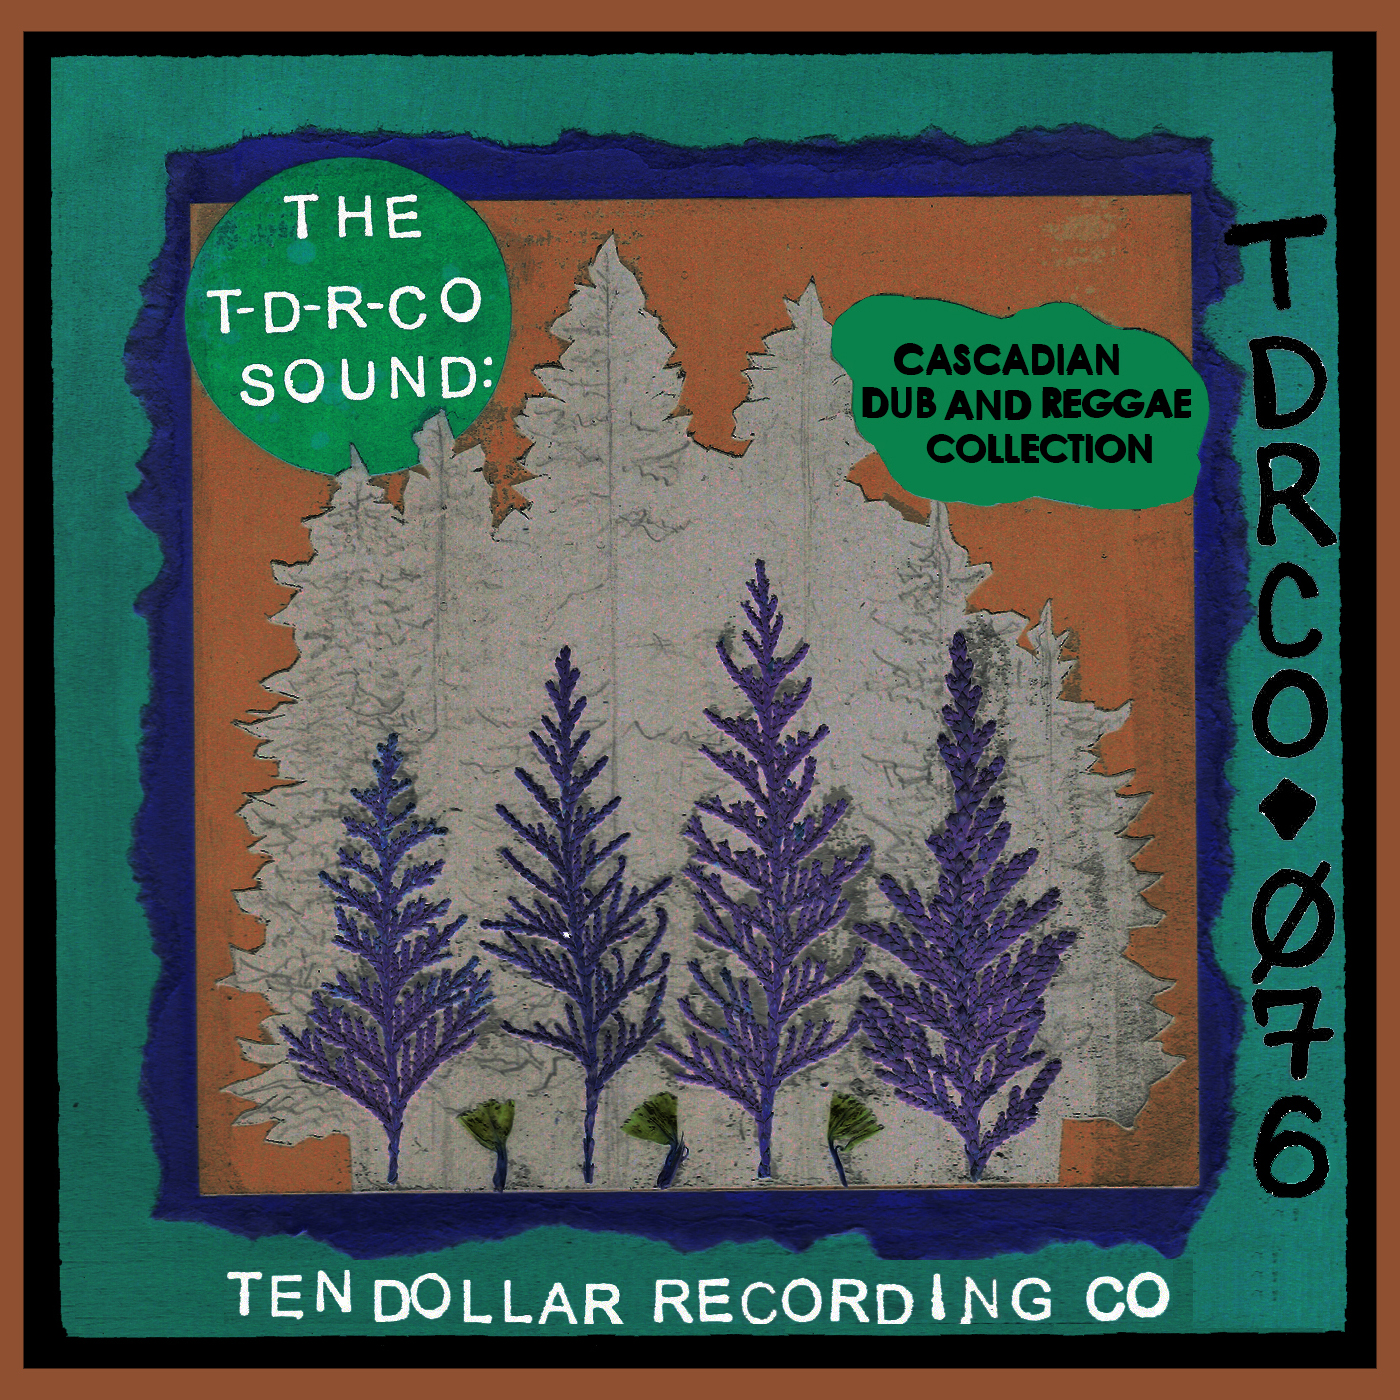 The T-D-R-Co Sound: Cascadian Dub and Reggae Collection